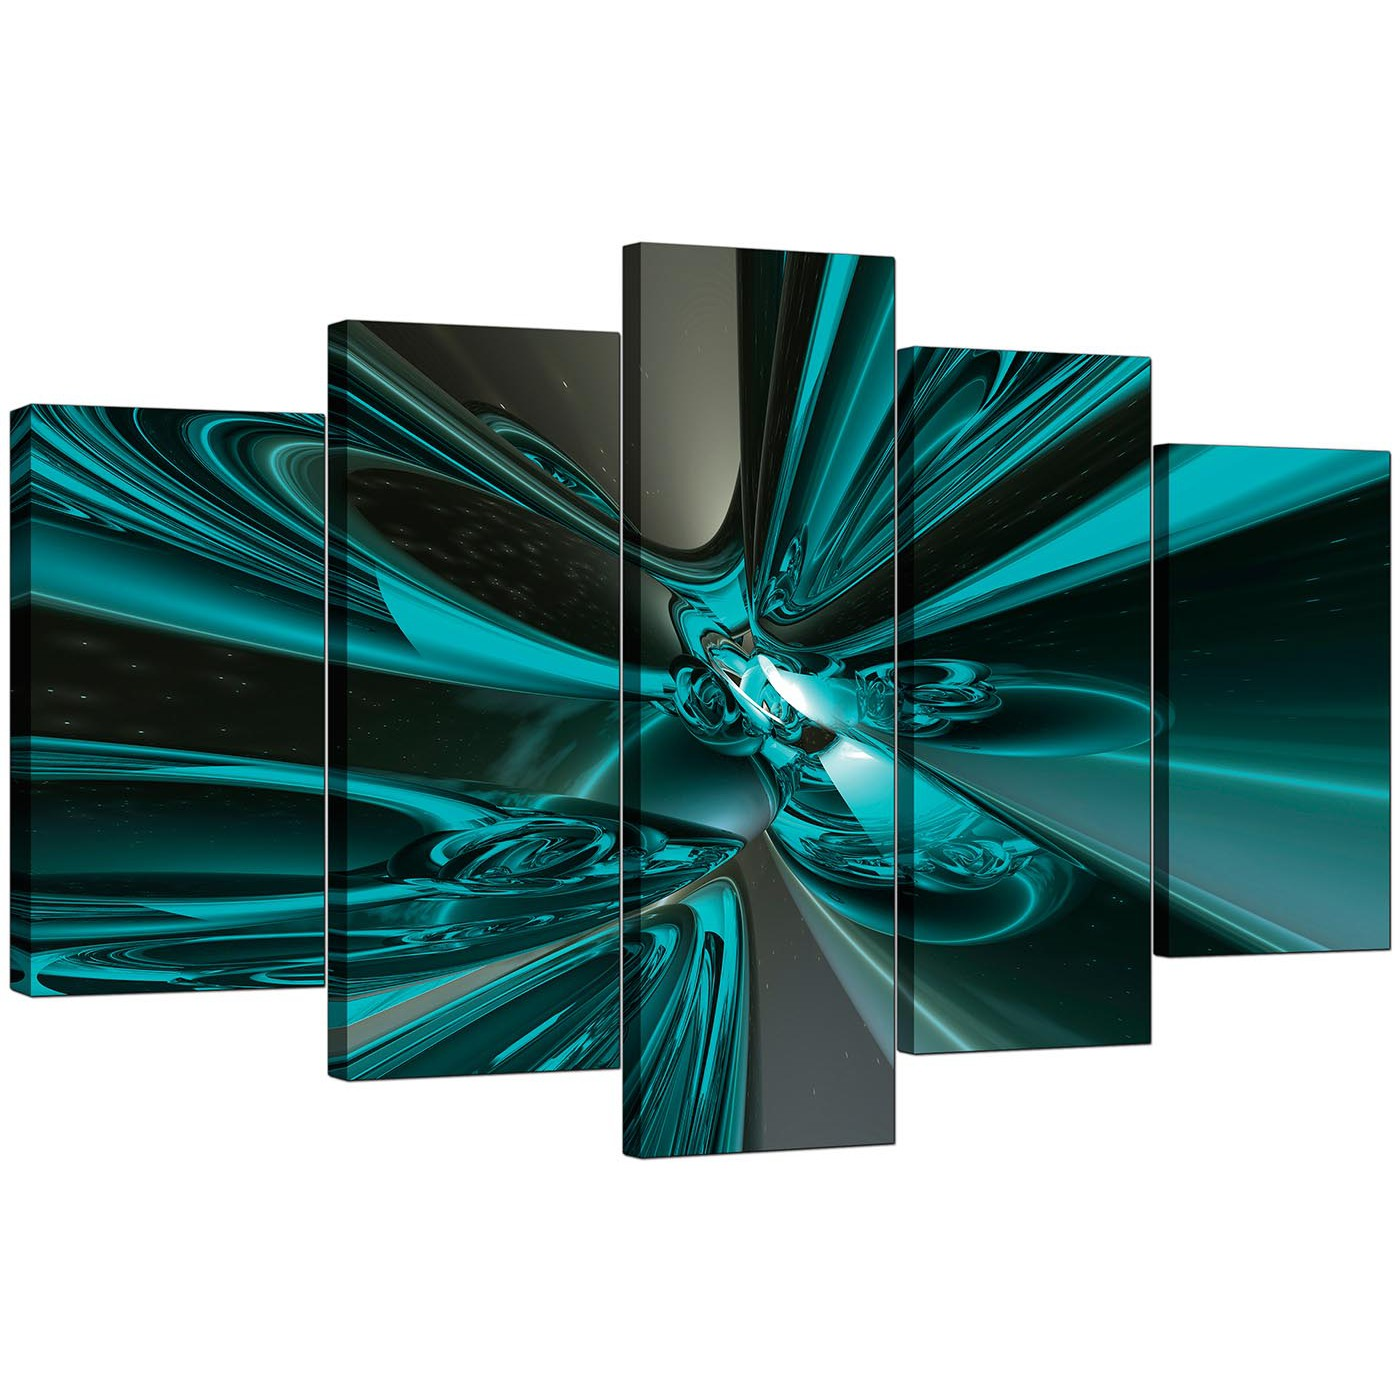 Extra Large Teal Abstract Canvas Prints 5 Piece